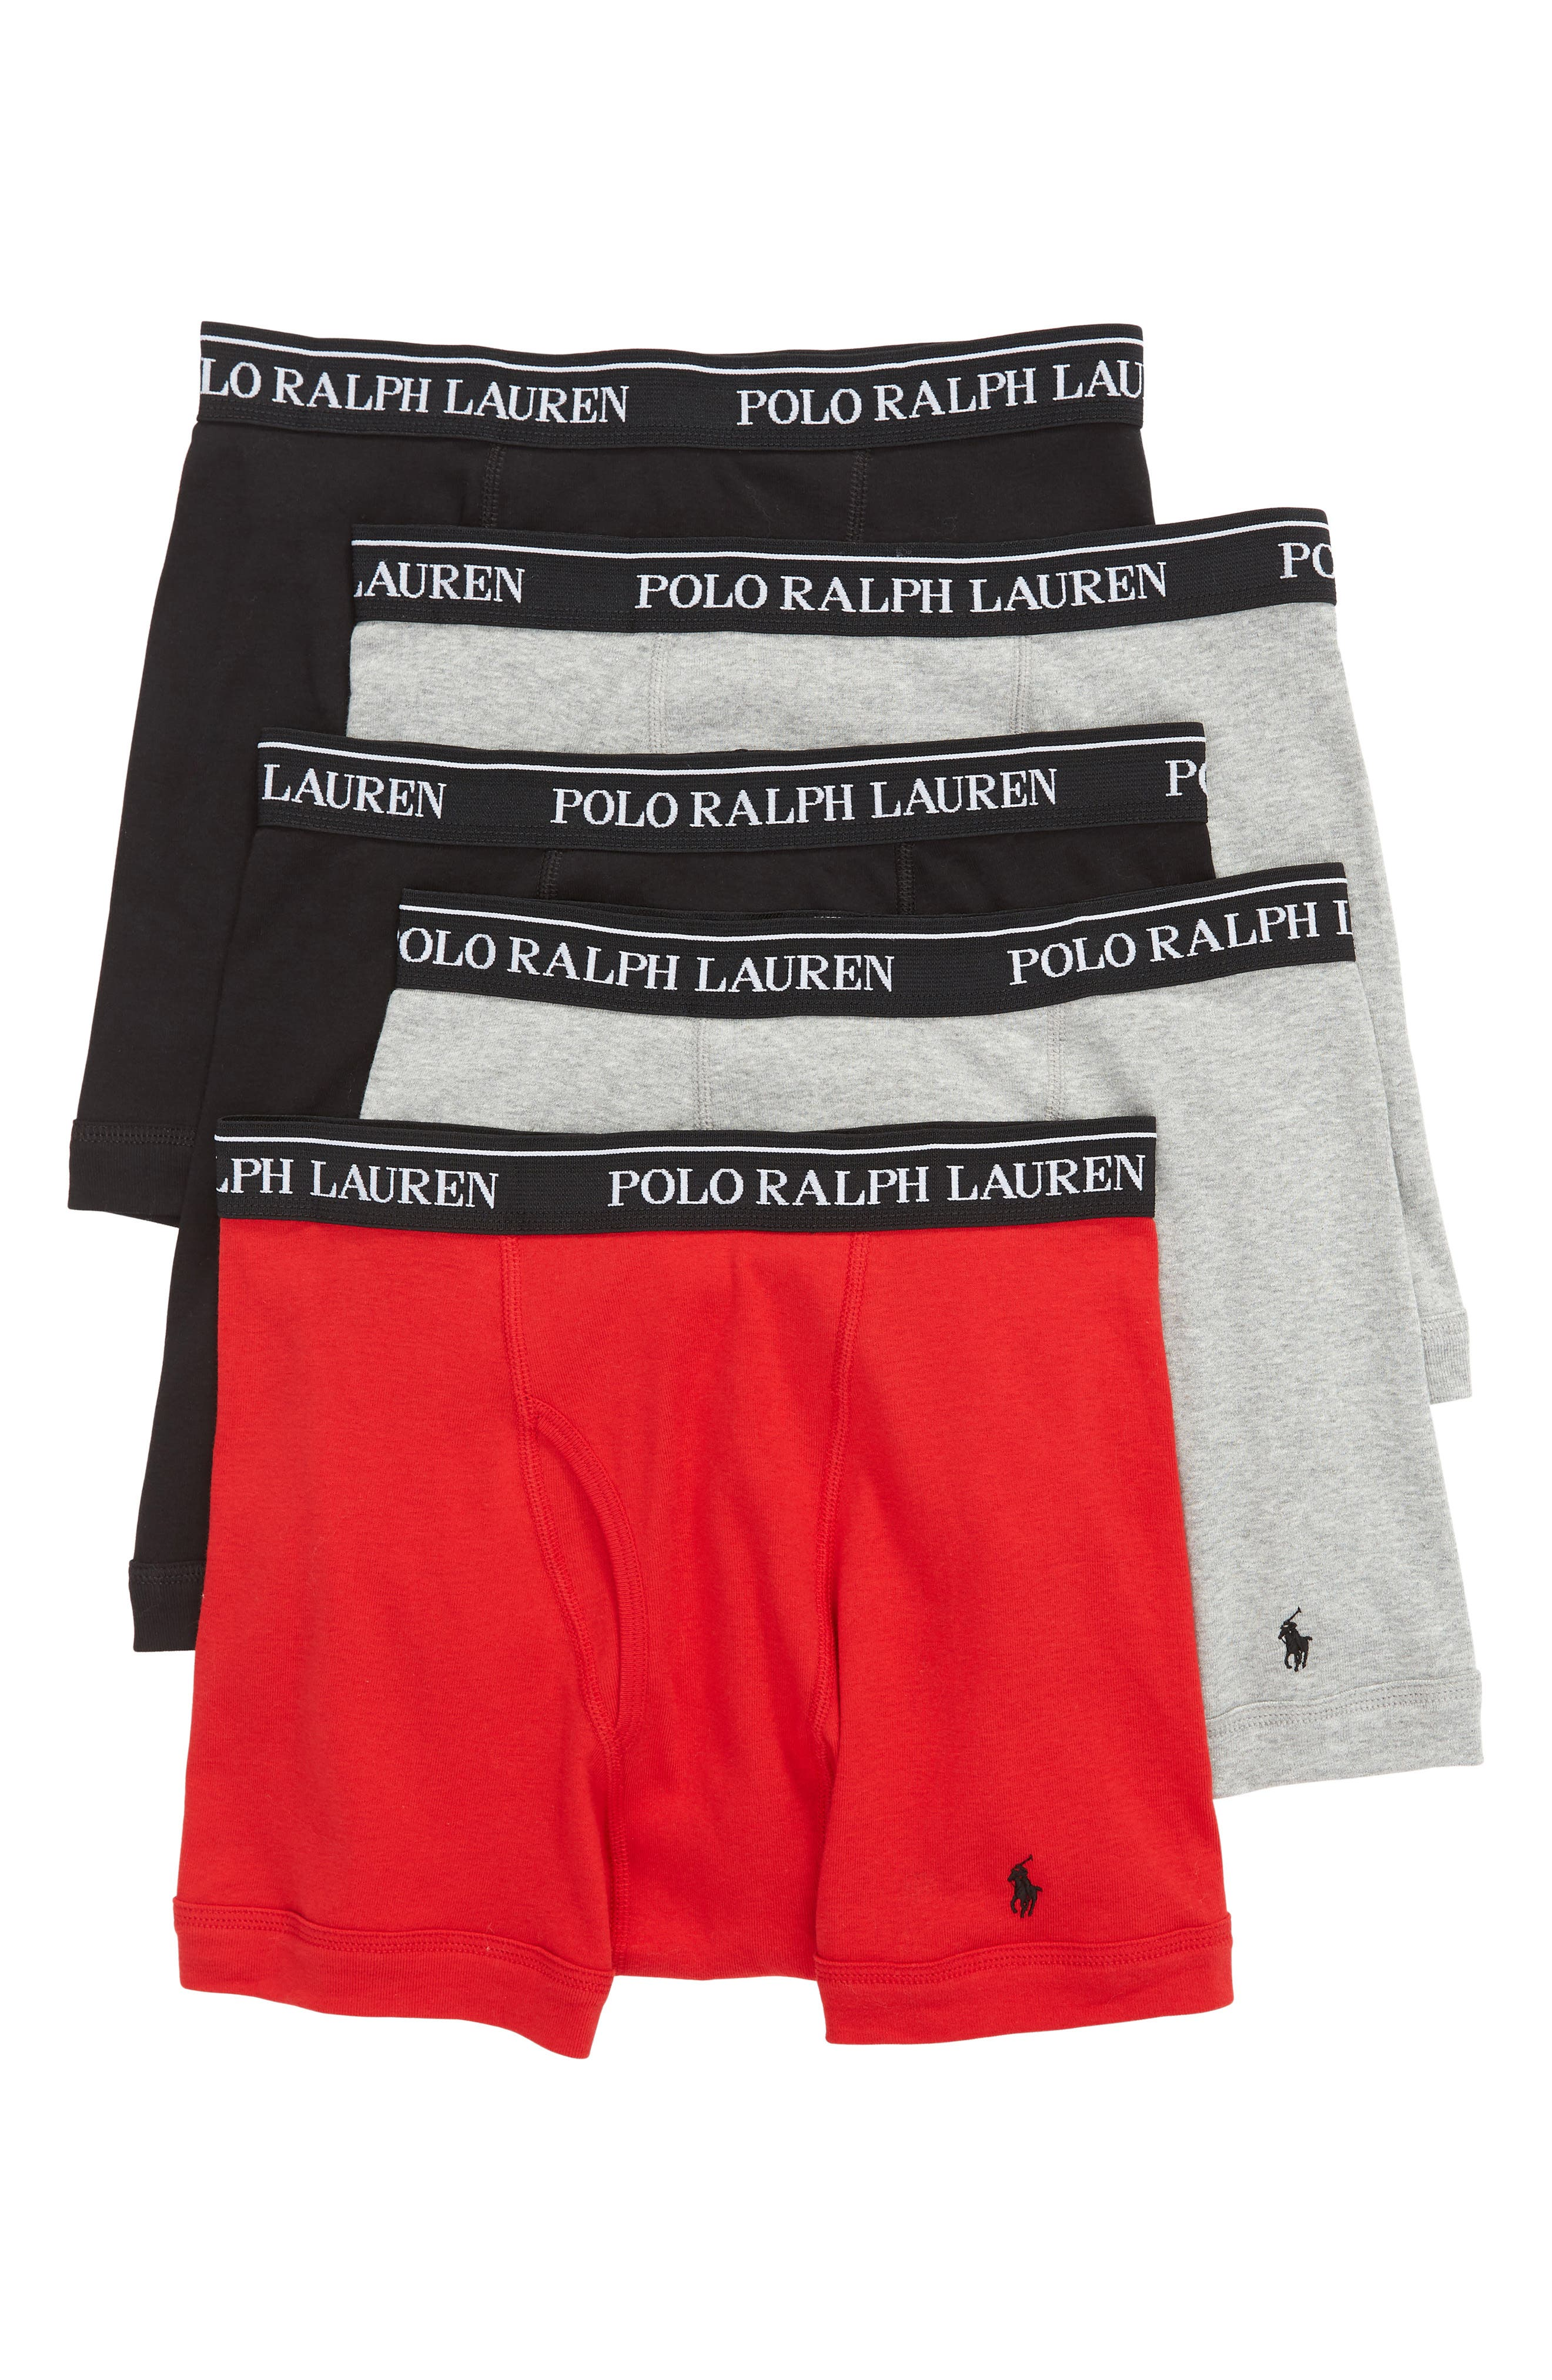 5-Pack Cotton Boxer Briefs,                             Main thumbnail 1, color,                             ANDOVER HEATHER/ RED/ BLACK